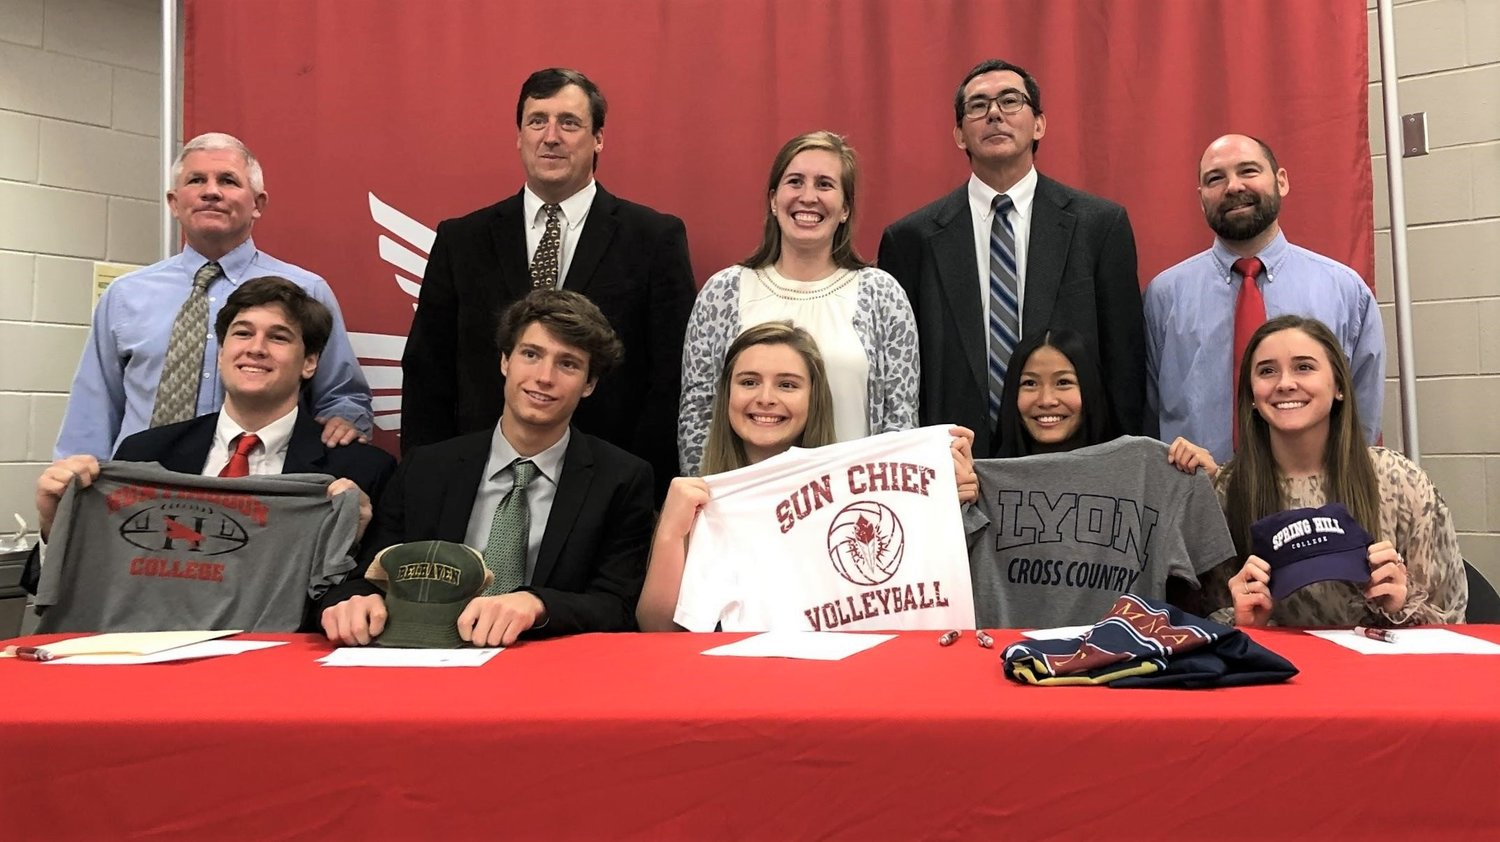 Seated, from left: Grant Murray, Football, Huntington College; Anthony Lazarri, Soccer, Belhaven University; Caitlyn Bushaw, Volleyball, Coastal Community College; Allison Boyd, Cross Country, Lyon College; Sydney Barter, Basketball, Springhill College. Standing, from left to right: Coach Phelps, Coach Knapstein, Coach Williams, Coach Hall, Coach Offerle.